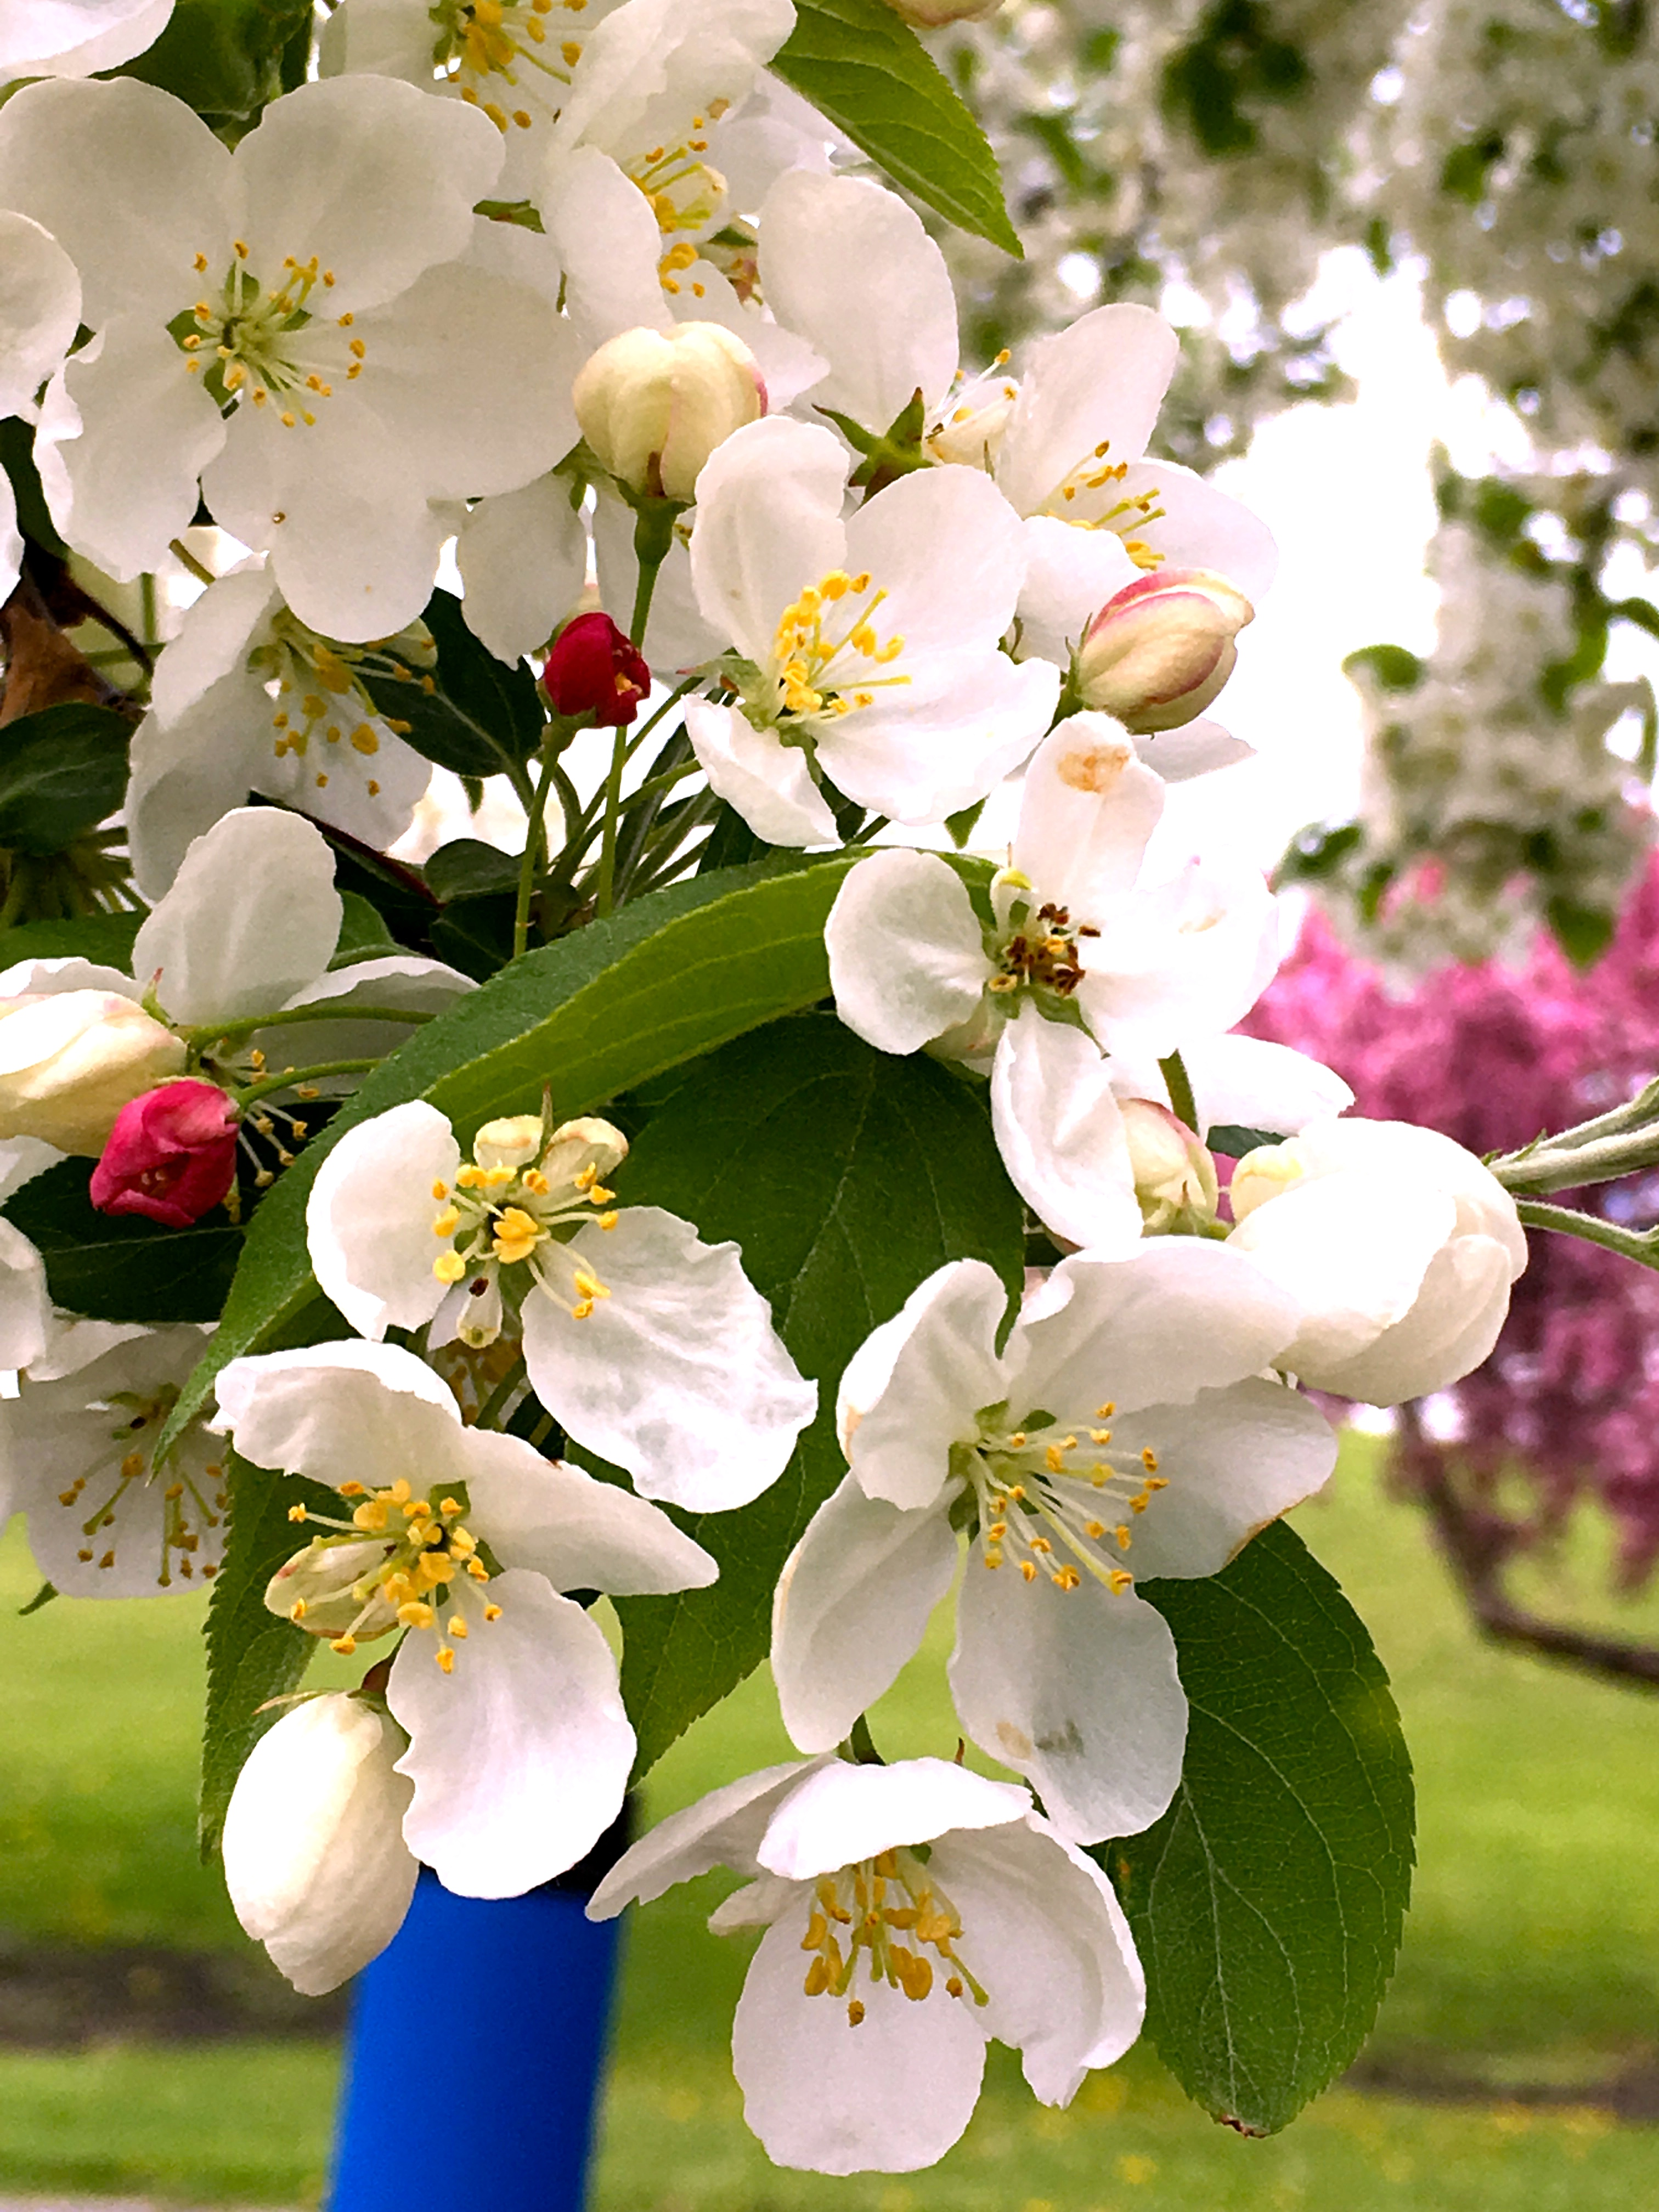 An apple tree in bloom at the Penn State Fruit Research and Extension Center